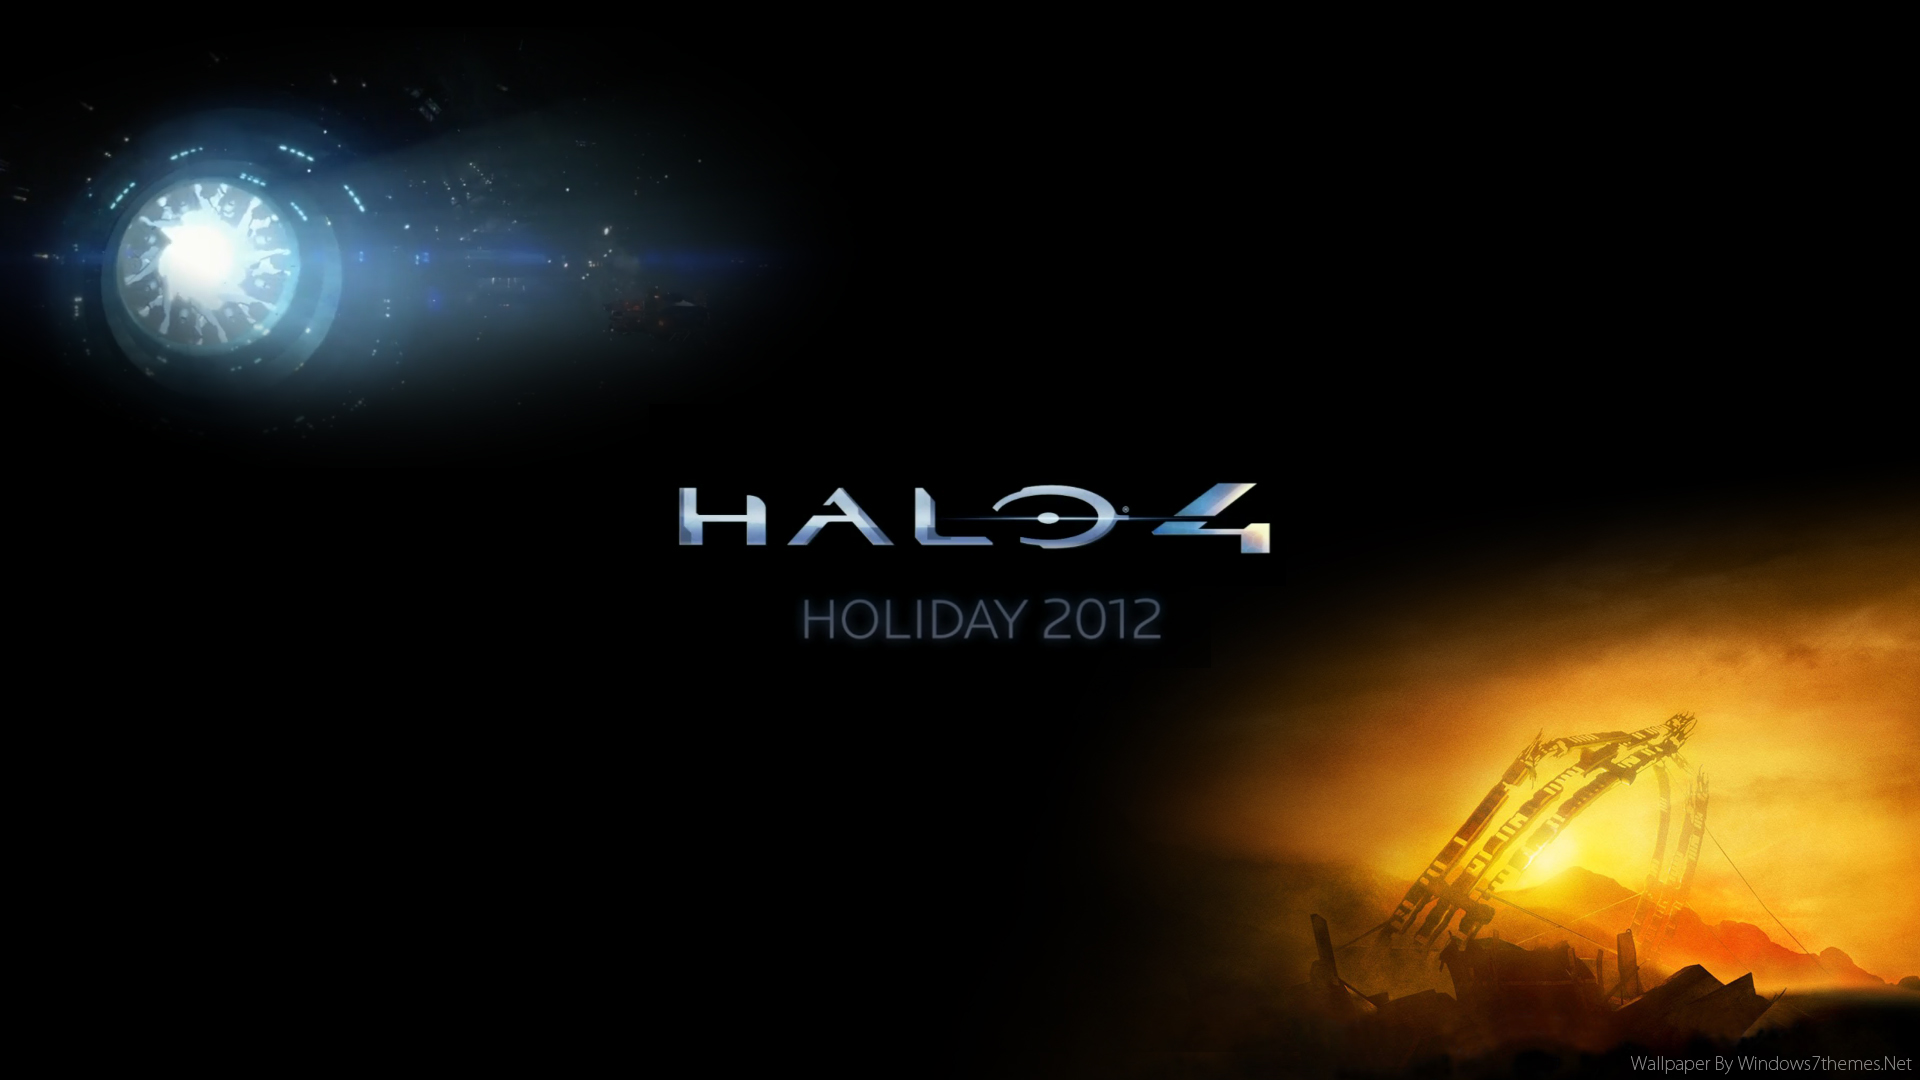 halo 4 – holiday 2012.jpg